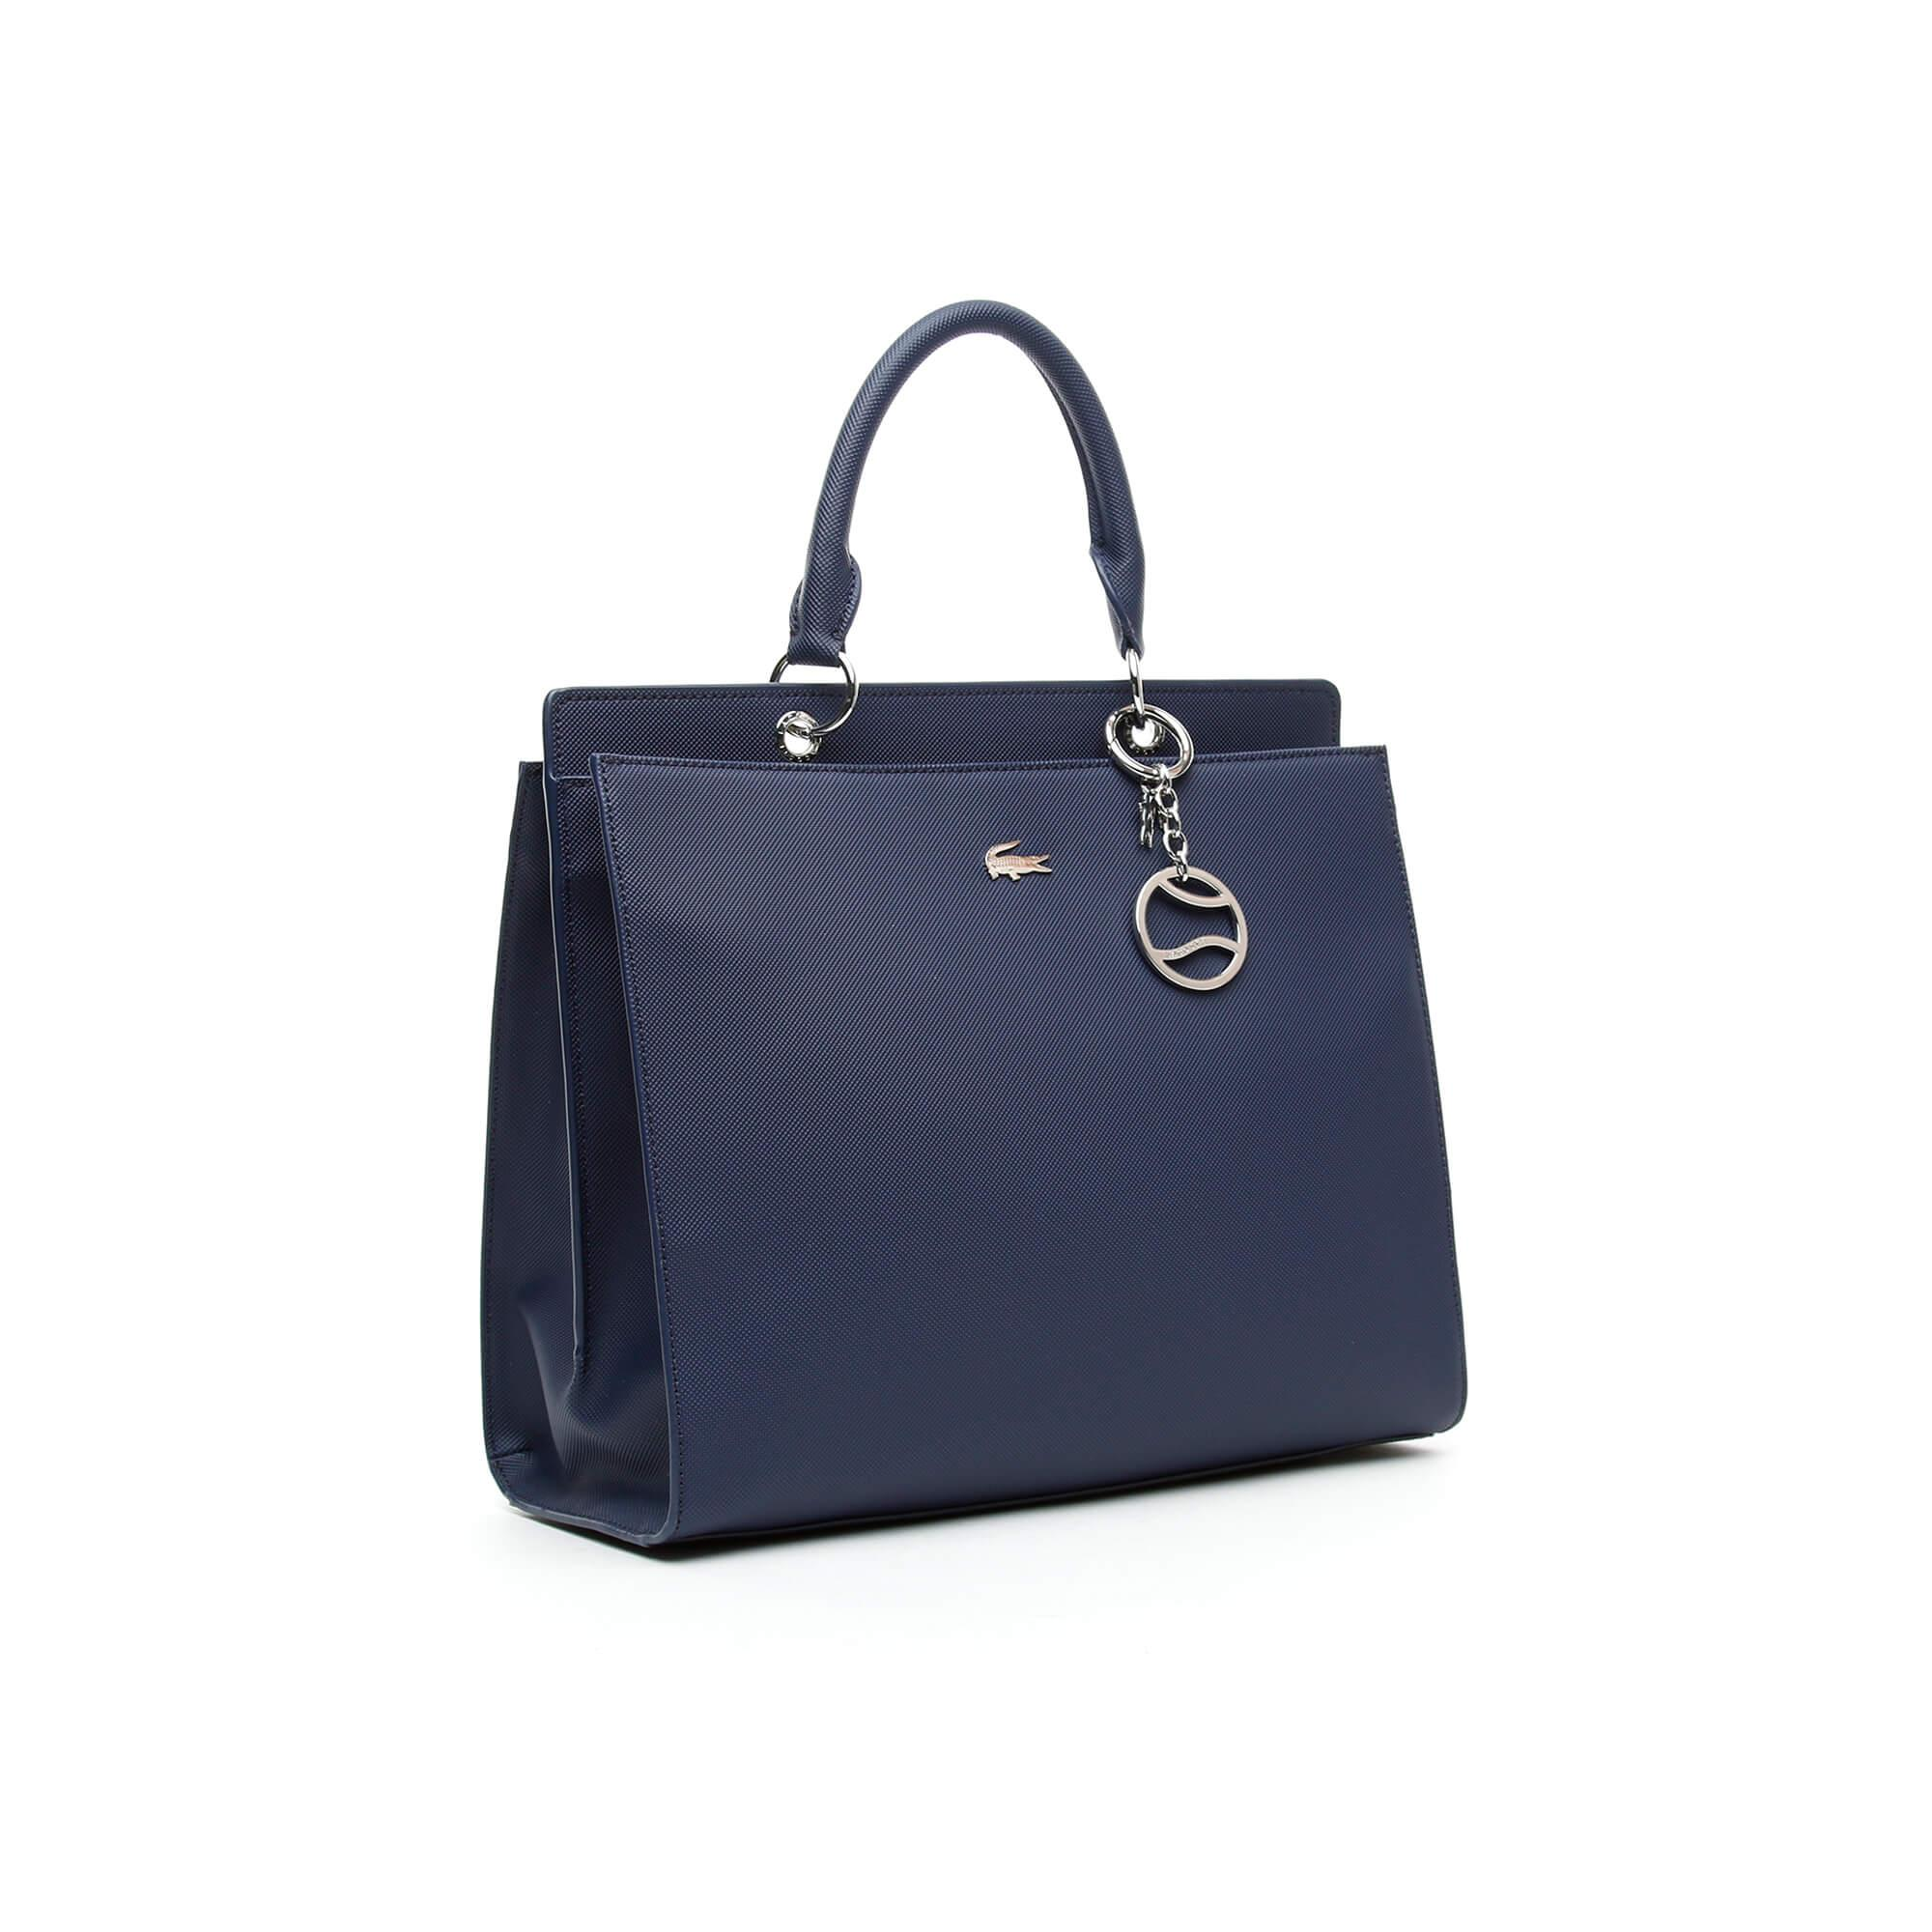 Lacoste Women's Daily Classic Bag